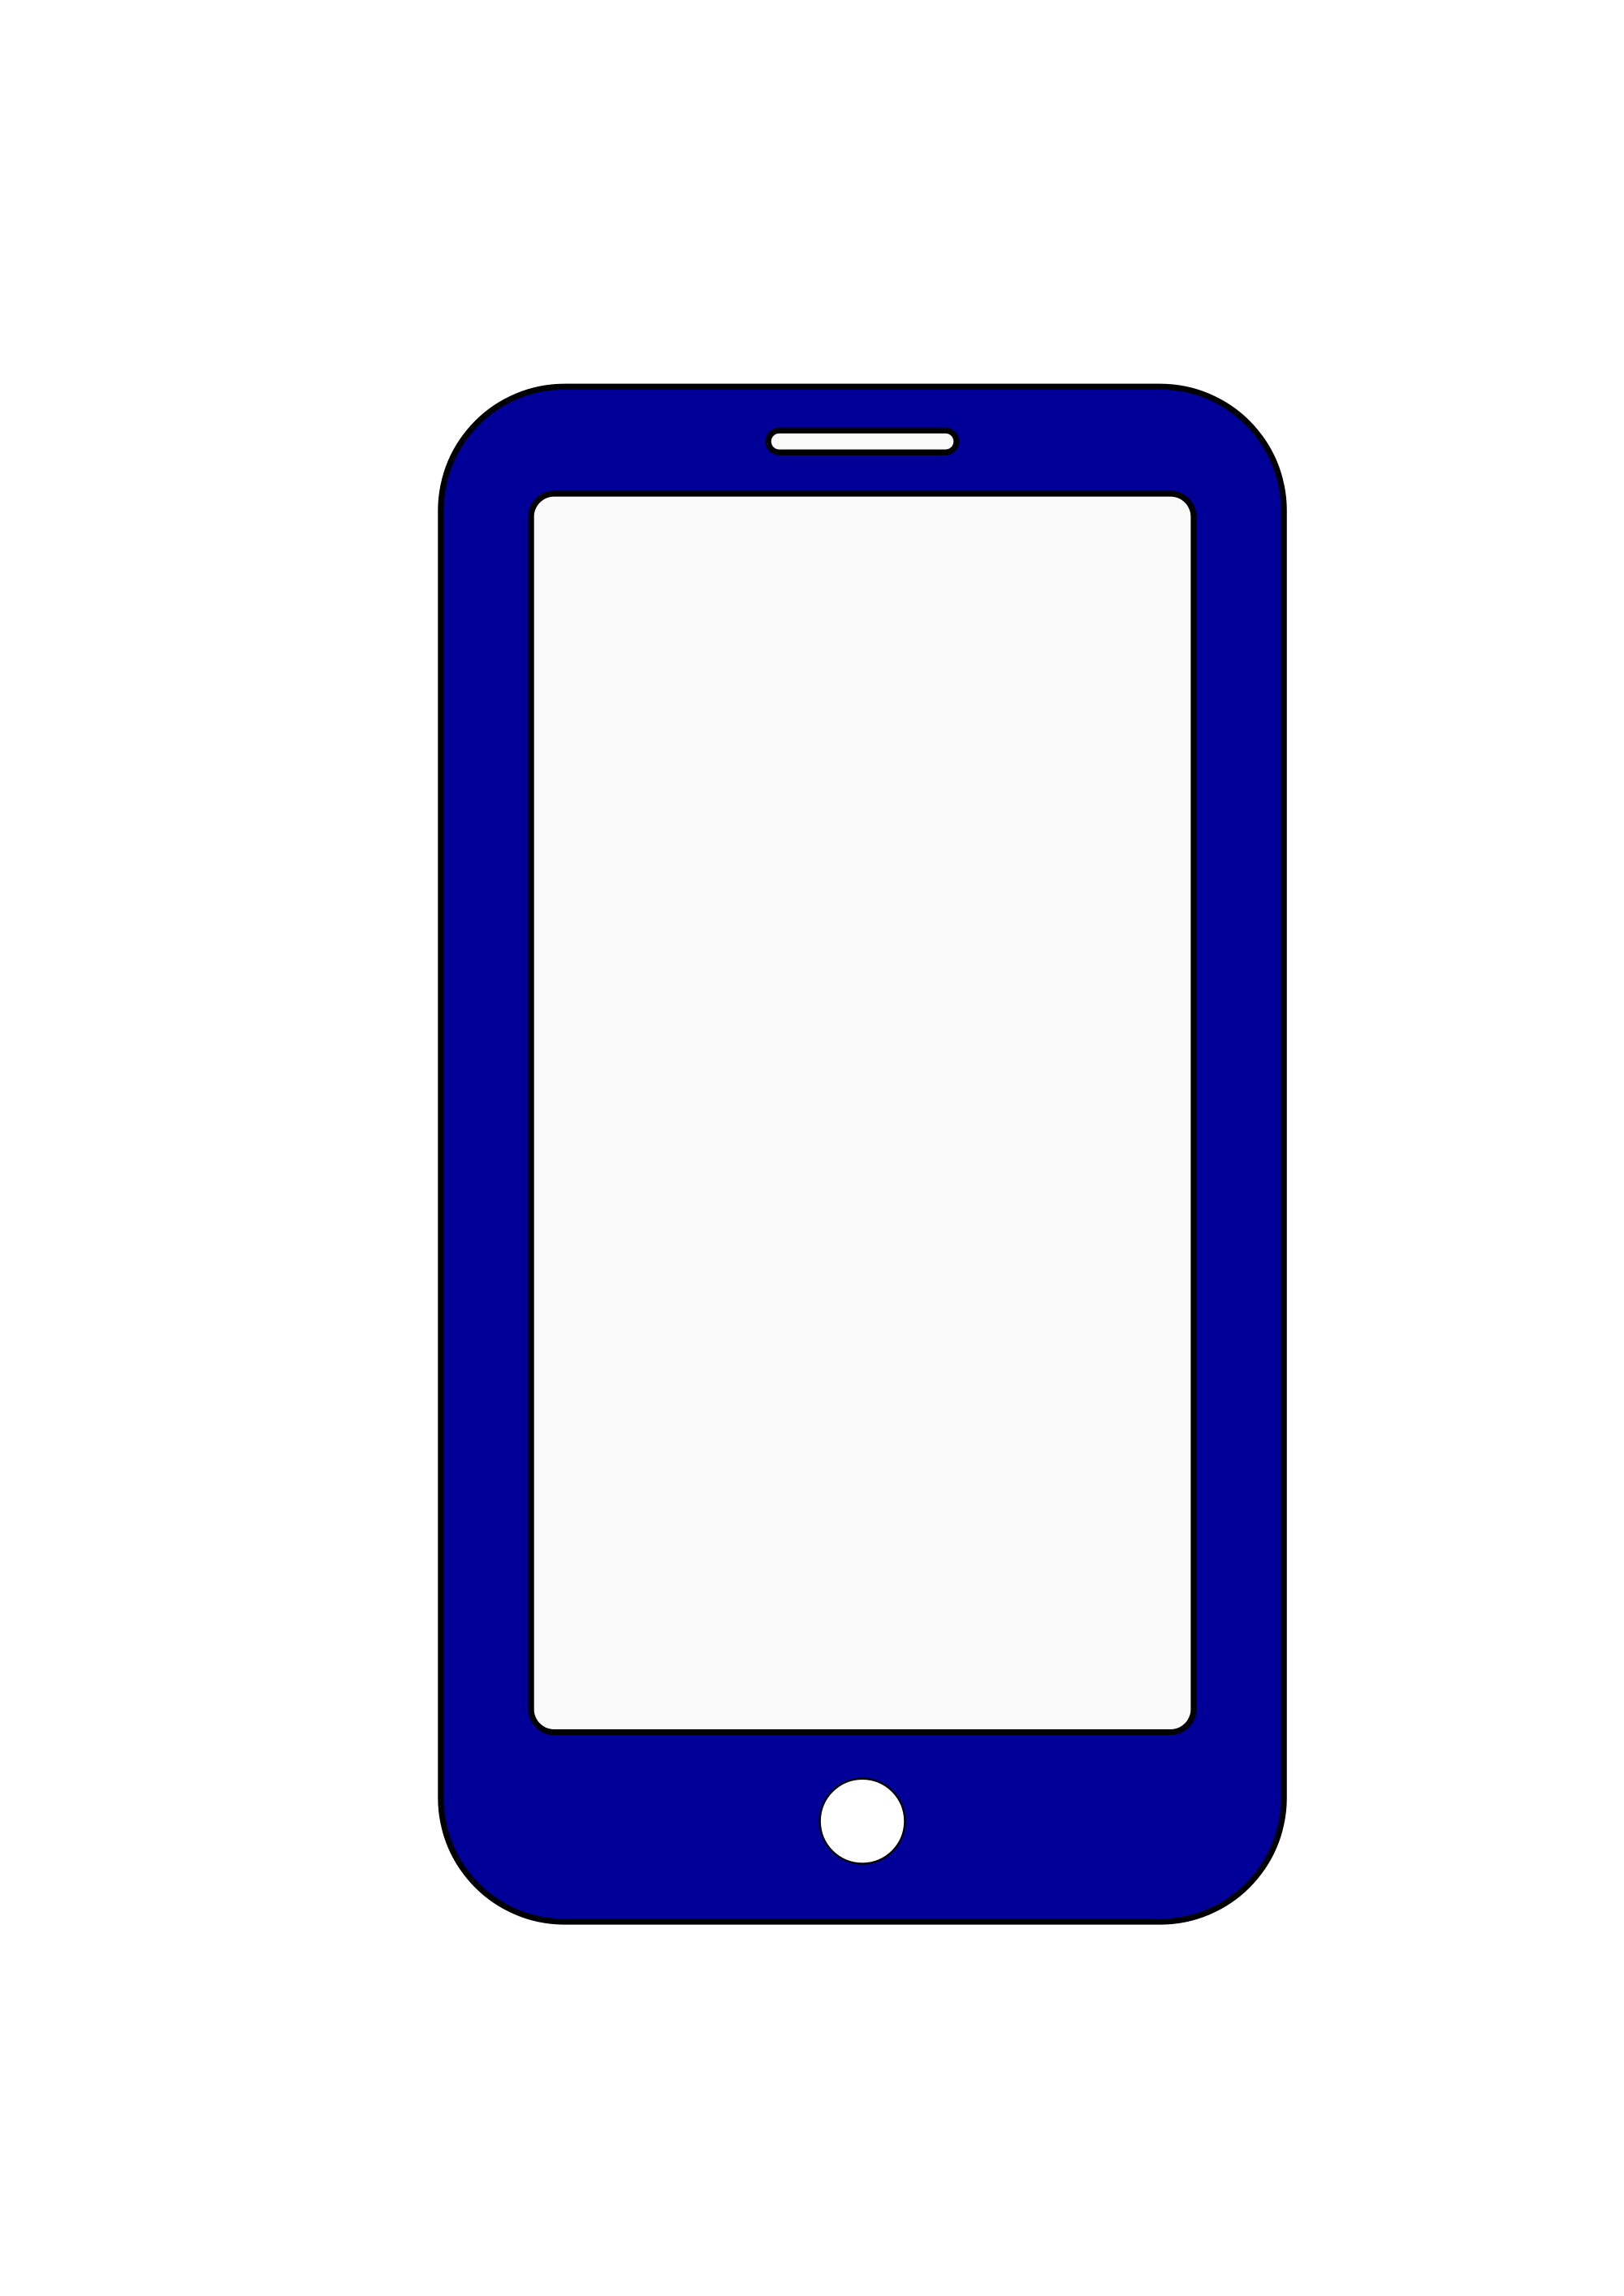 Phone clipart modern. File smartphone icon svg